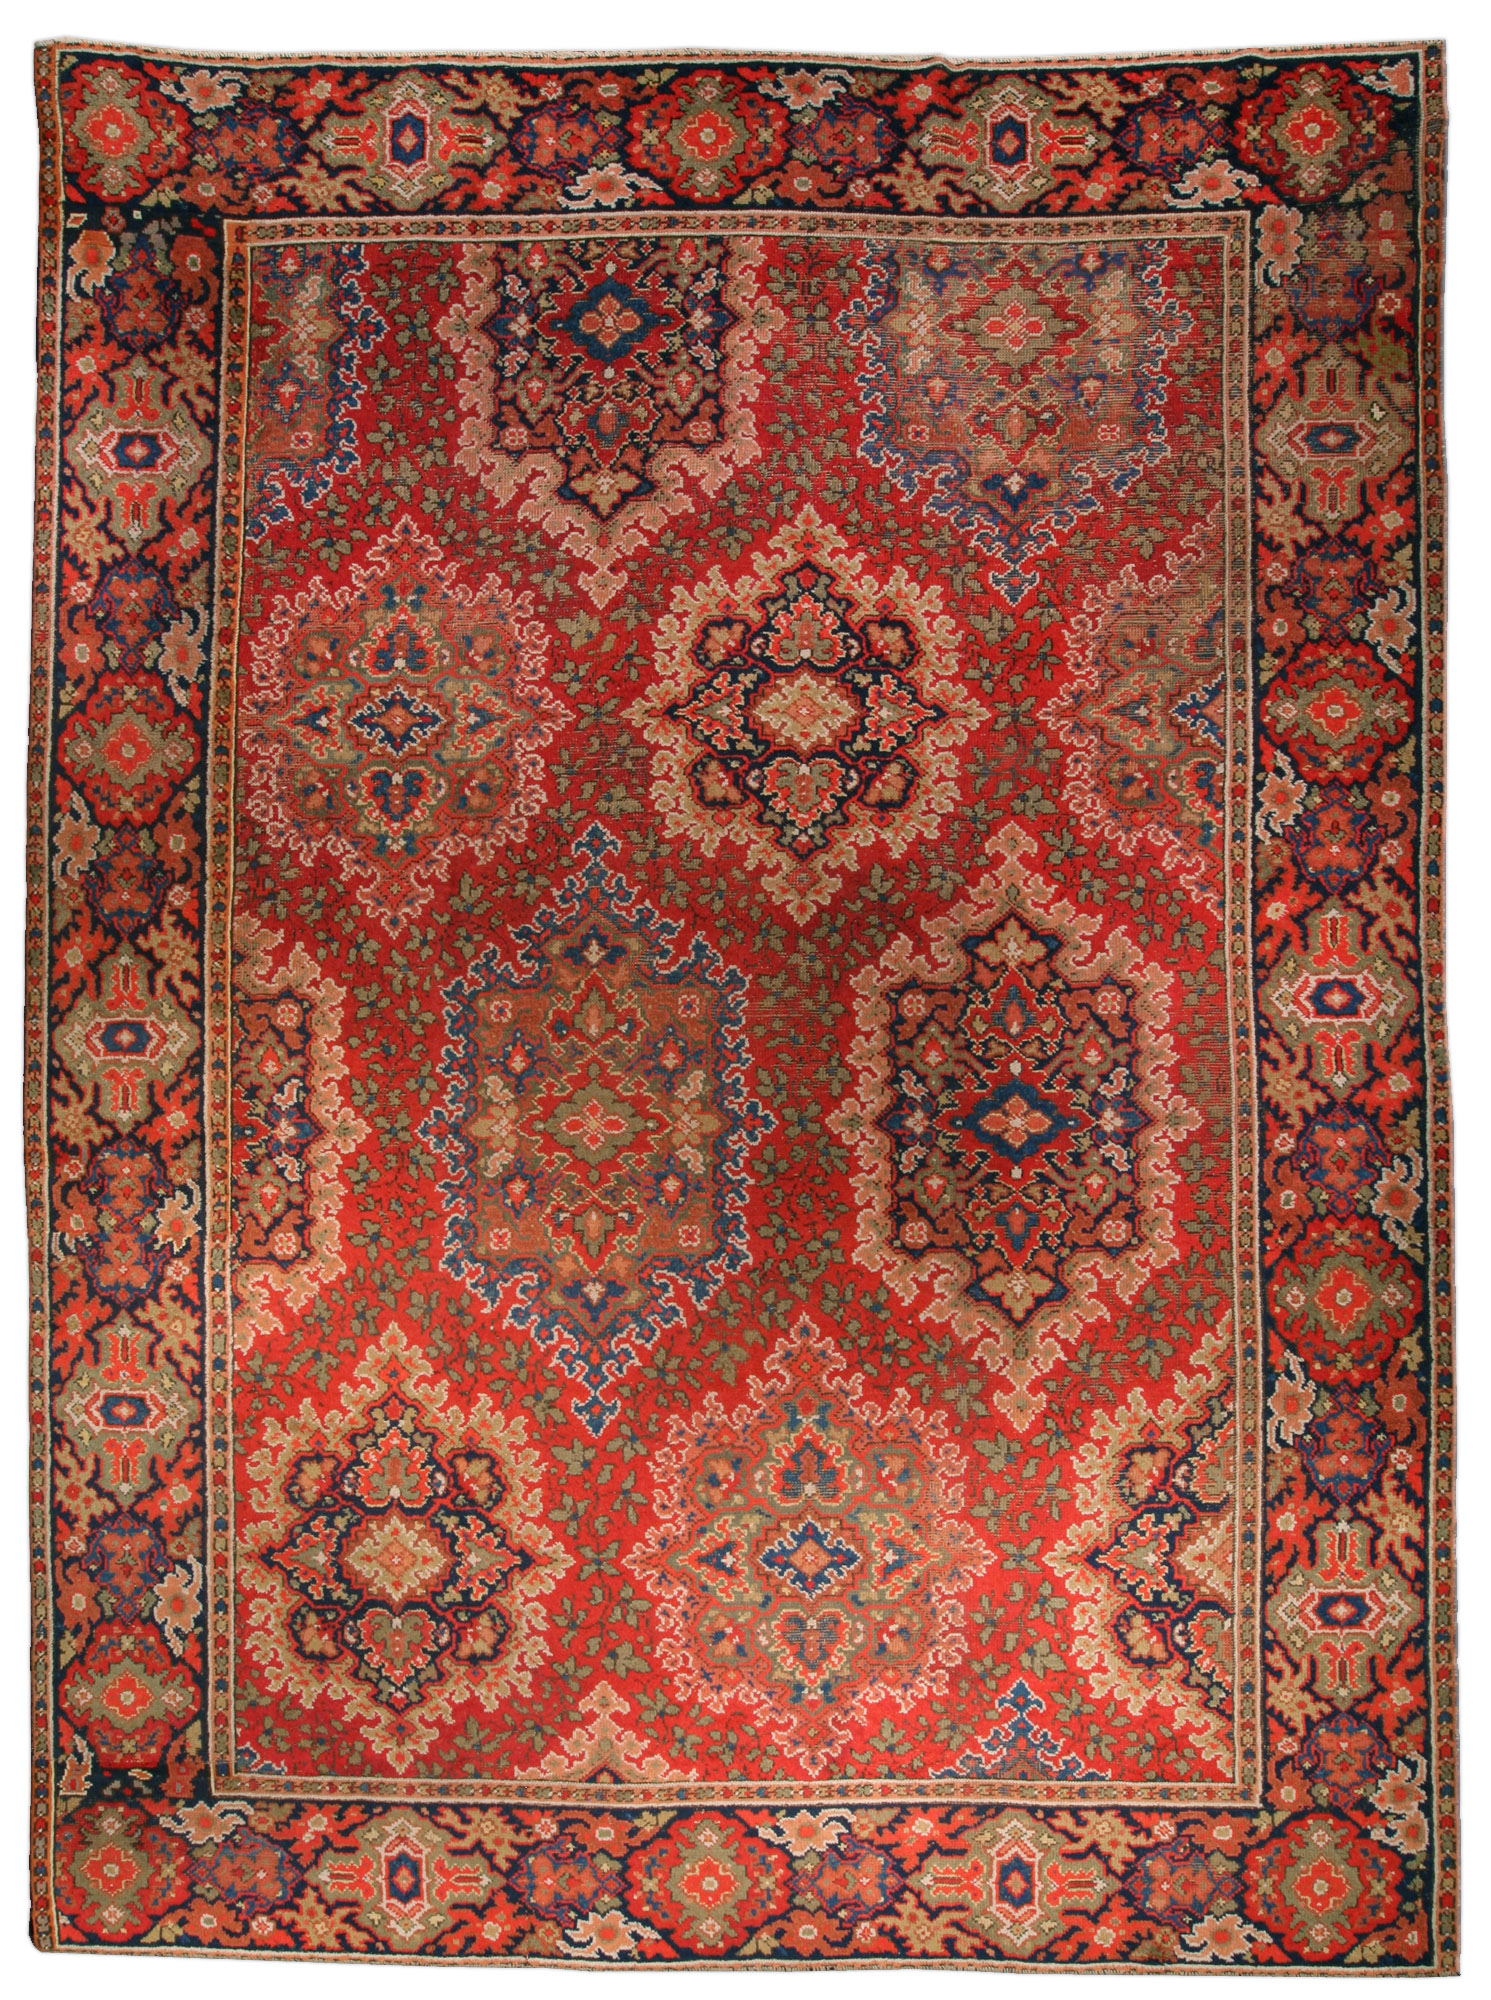 Antique English Axminster Carpet Bb1406 By Dlb